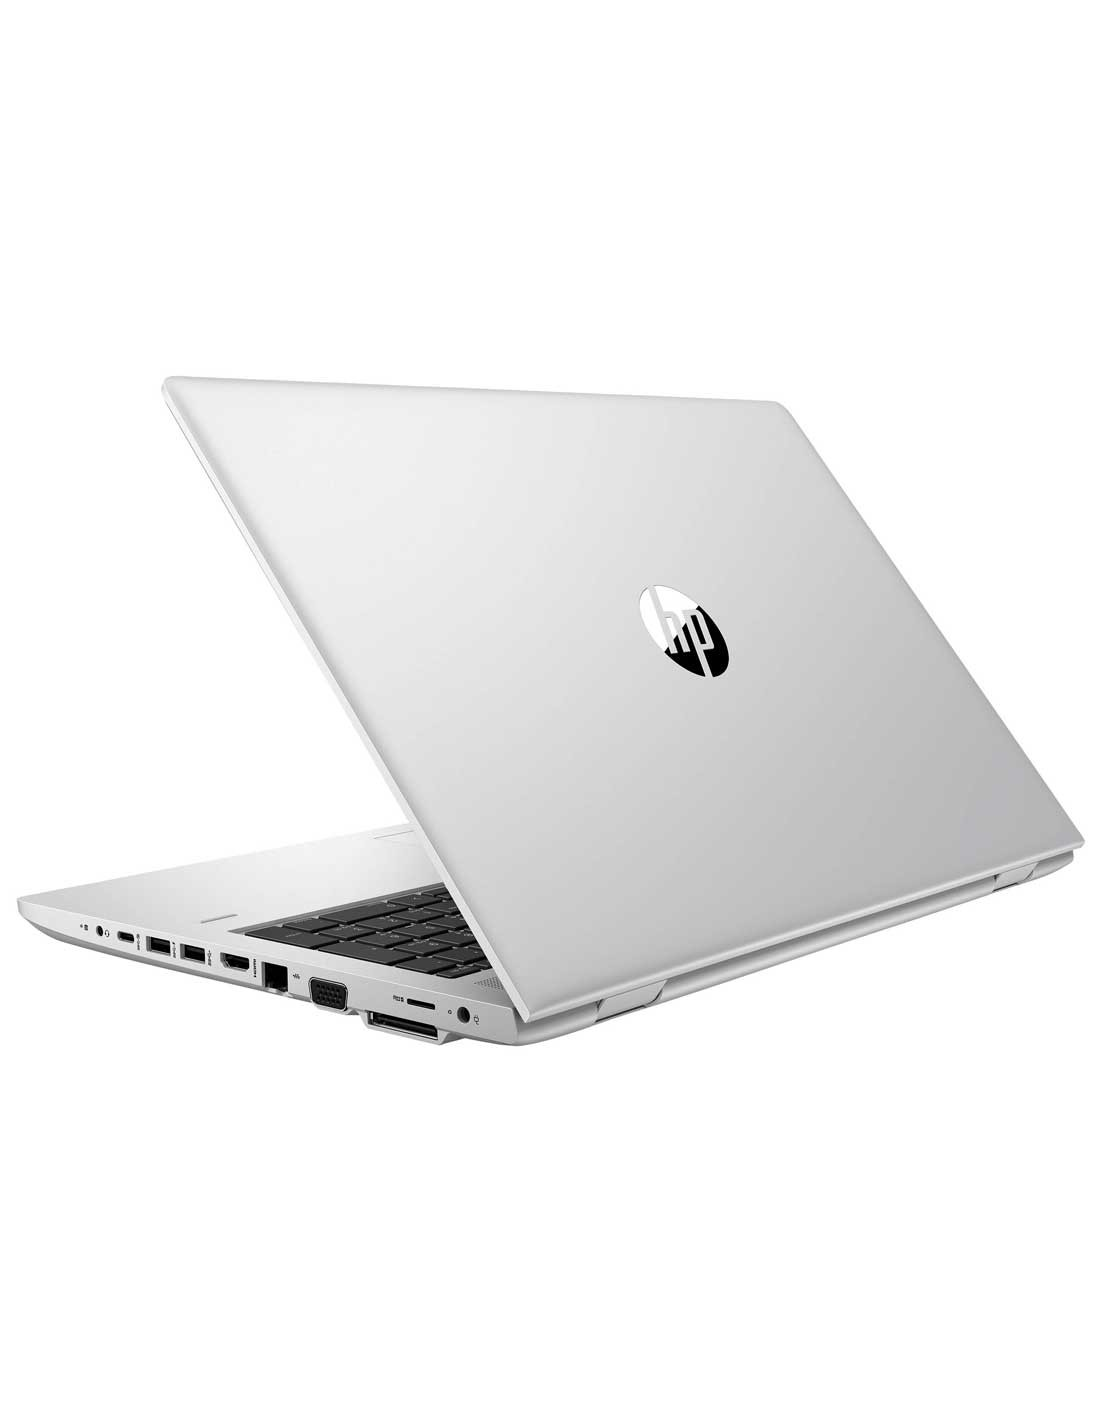 HP ProBook 650 G4 Notebook i7 images